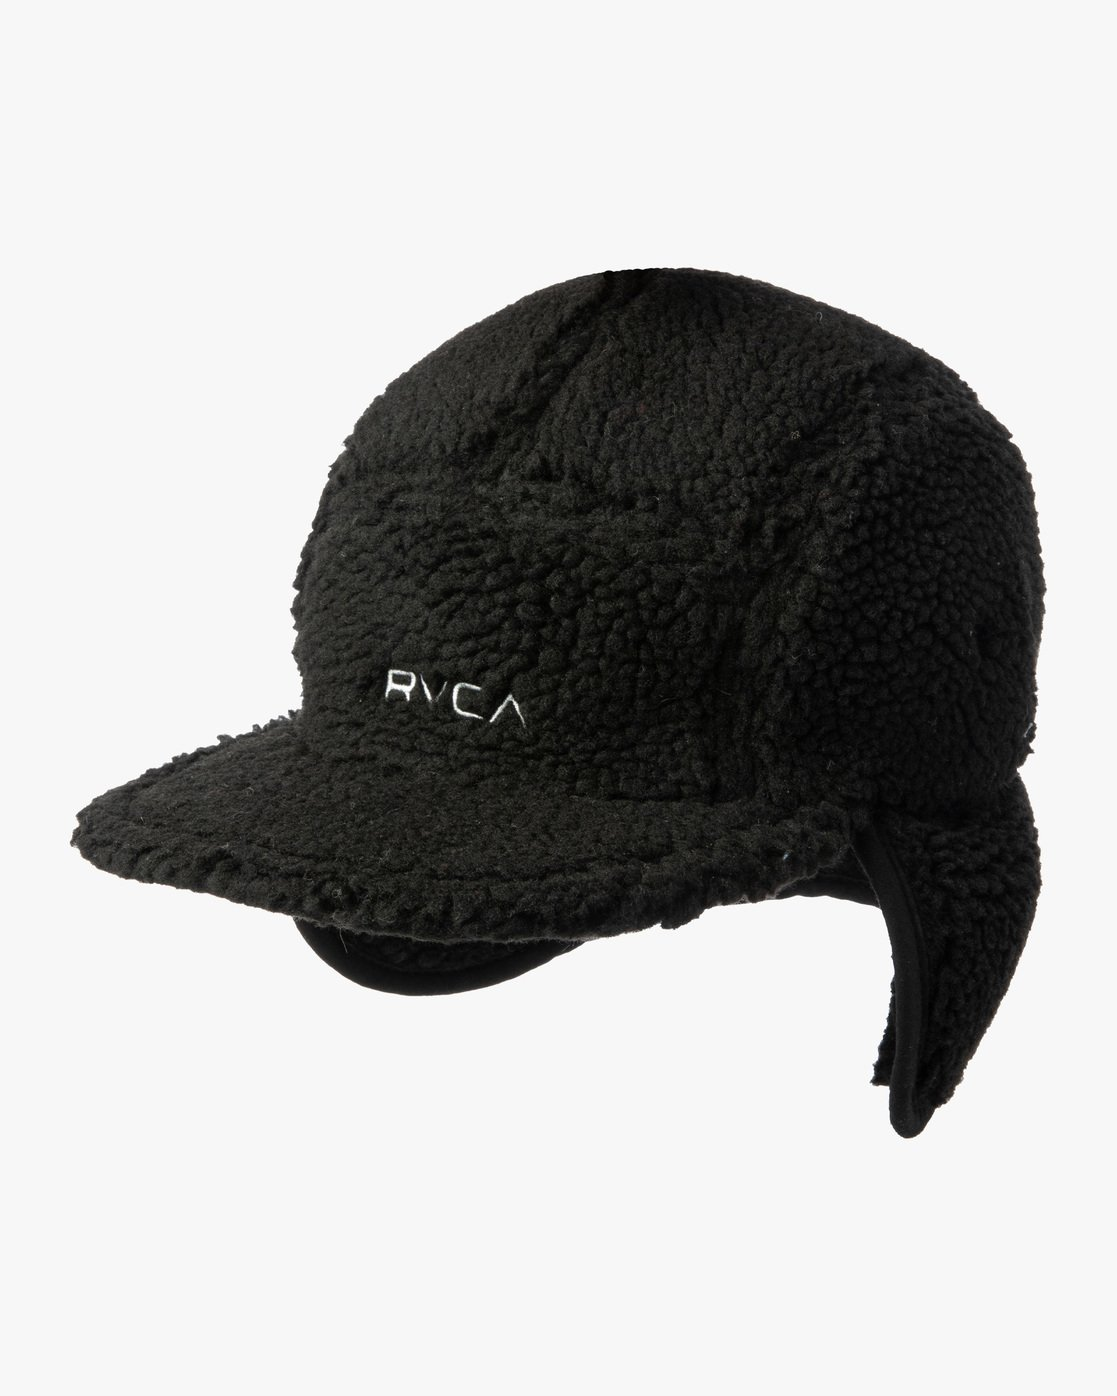 0 BOA FLEECE HOTH CAP Black GVYHA00100 RVCA